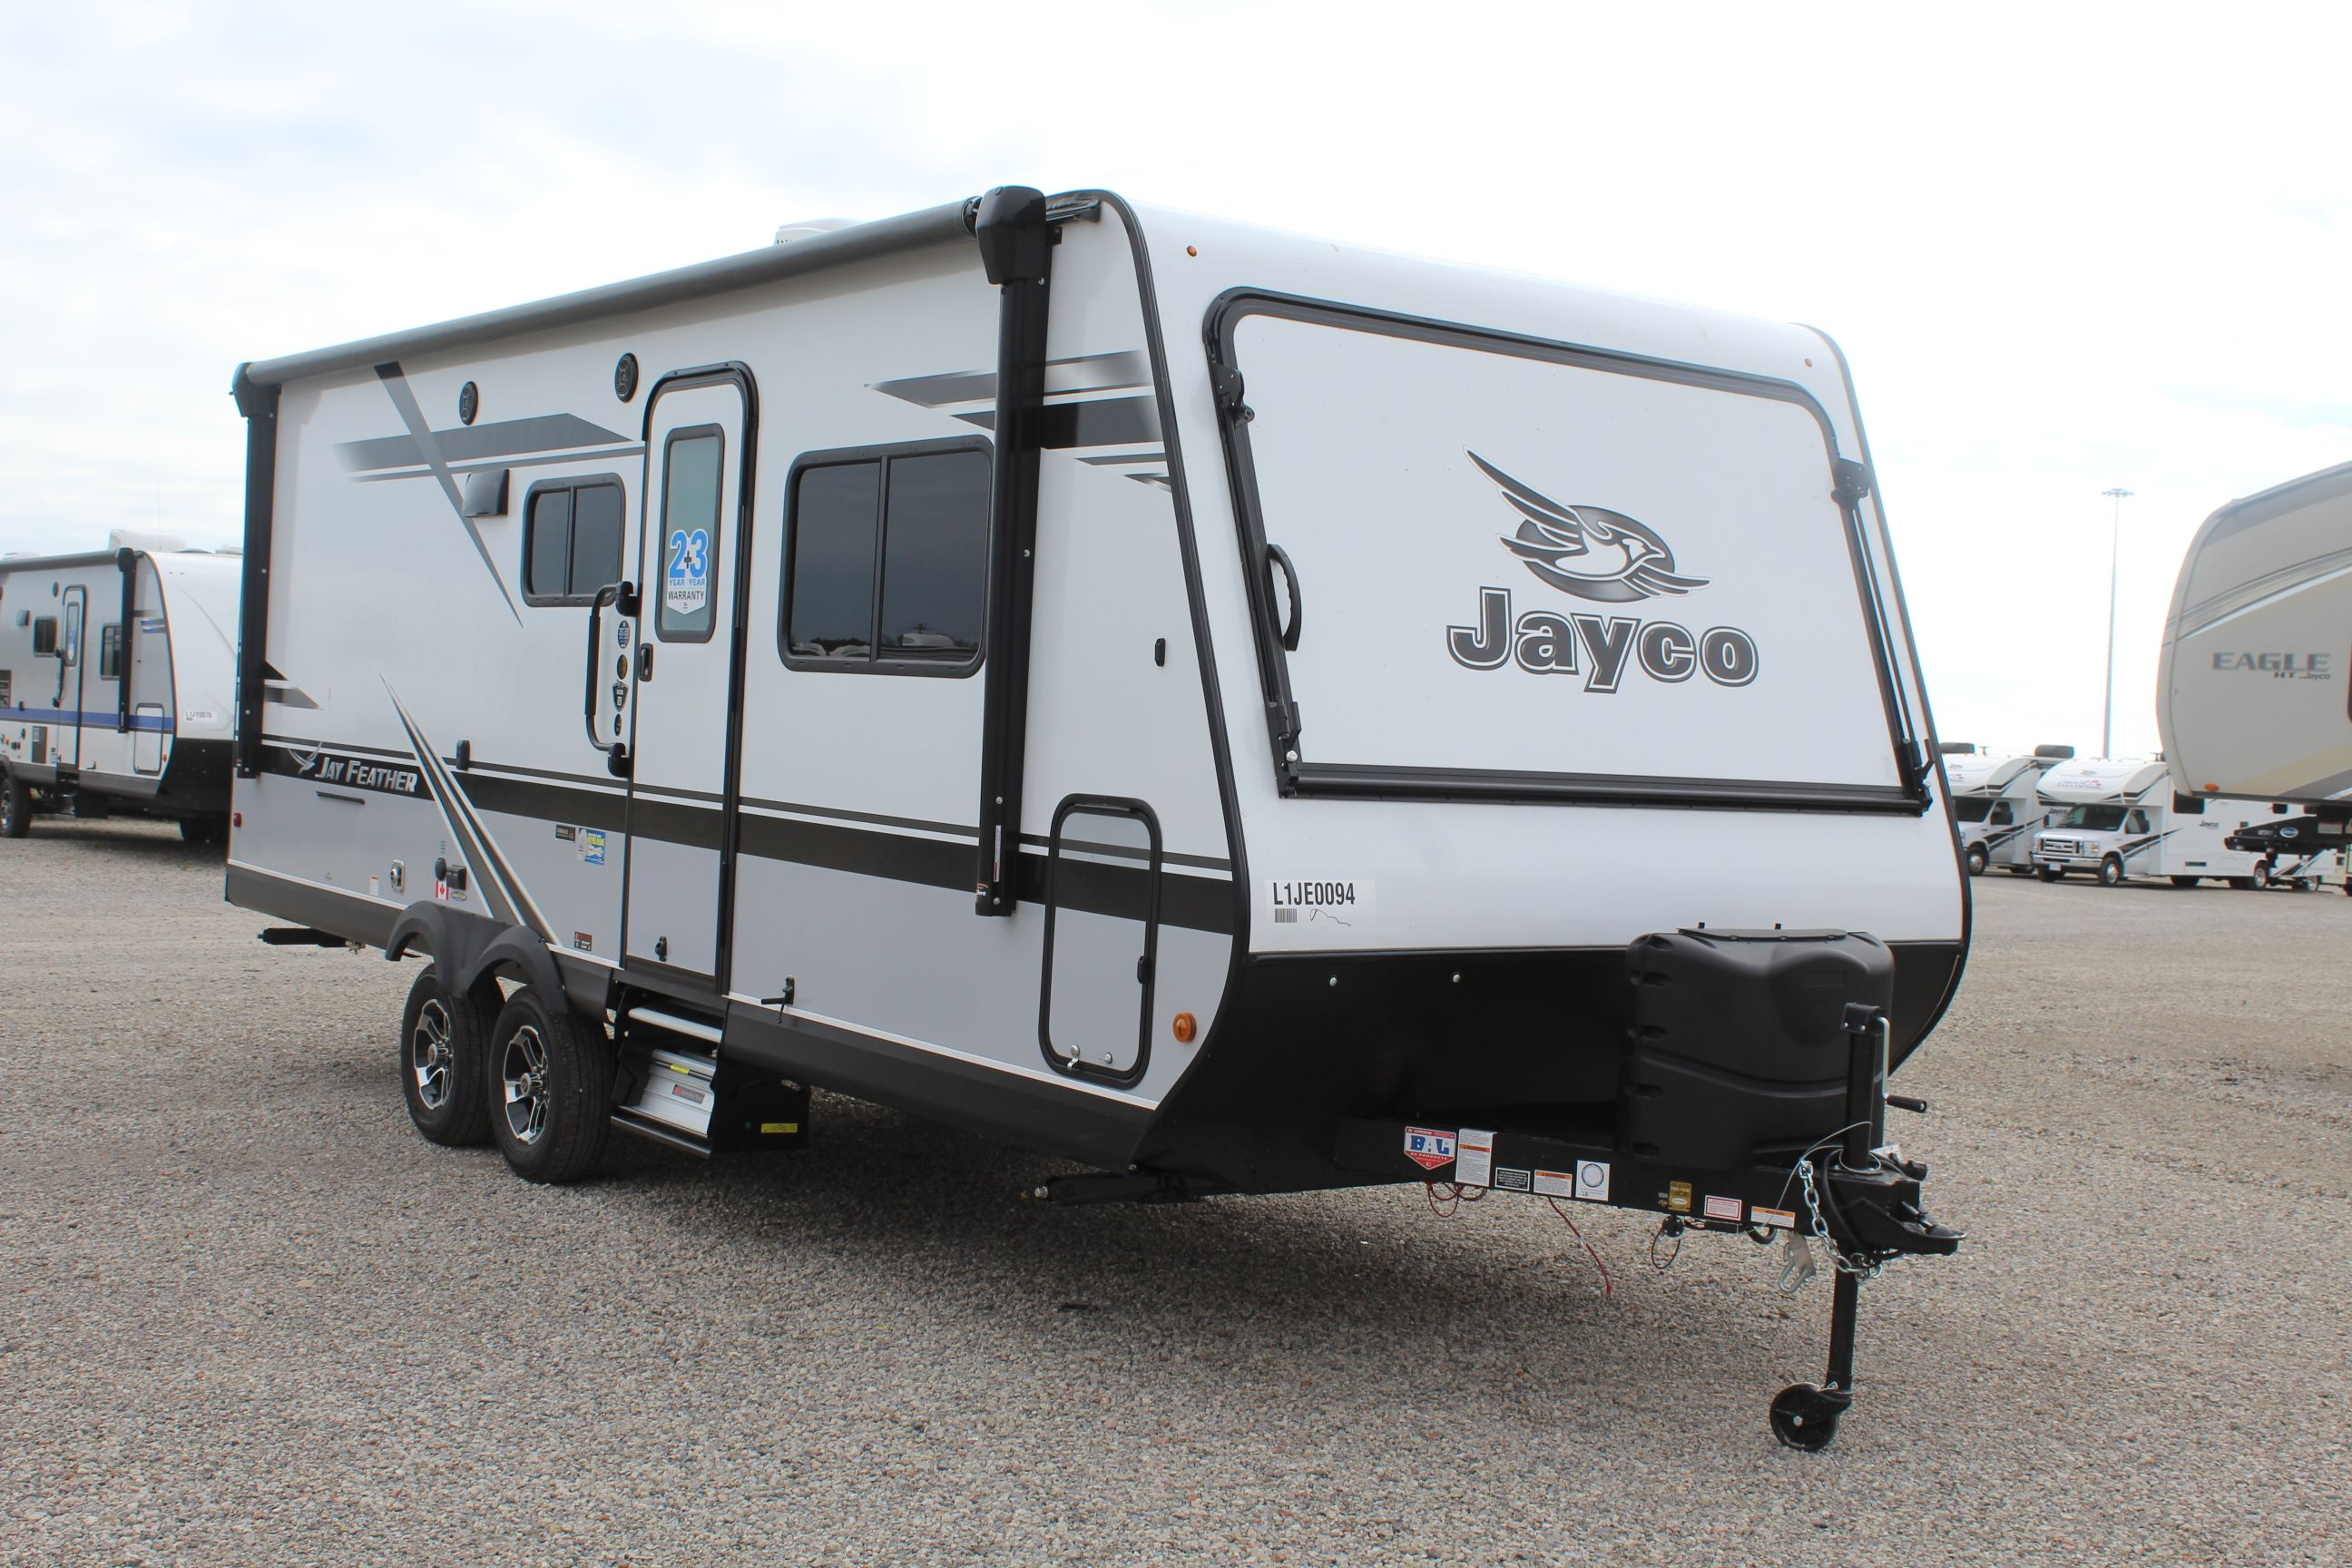 Front and Right Exterior View of the Jayco Jay Feather X23E Hybrid Trailer with its 19' Power Awning with LED lighting throughout and Aluminum-tread entry steps.